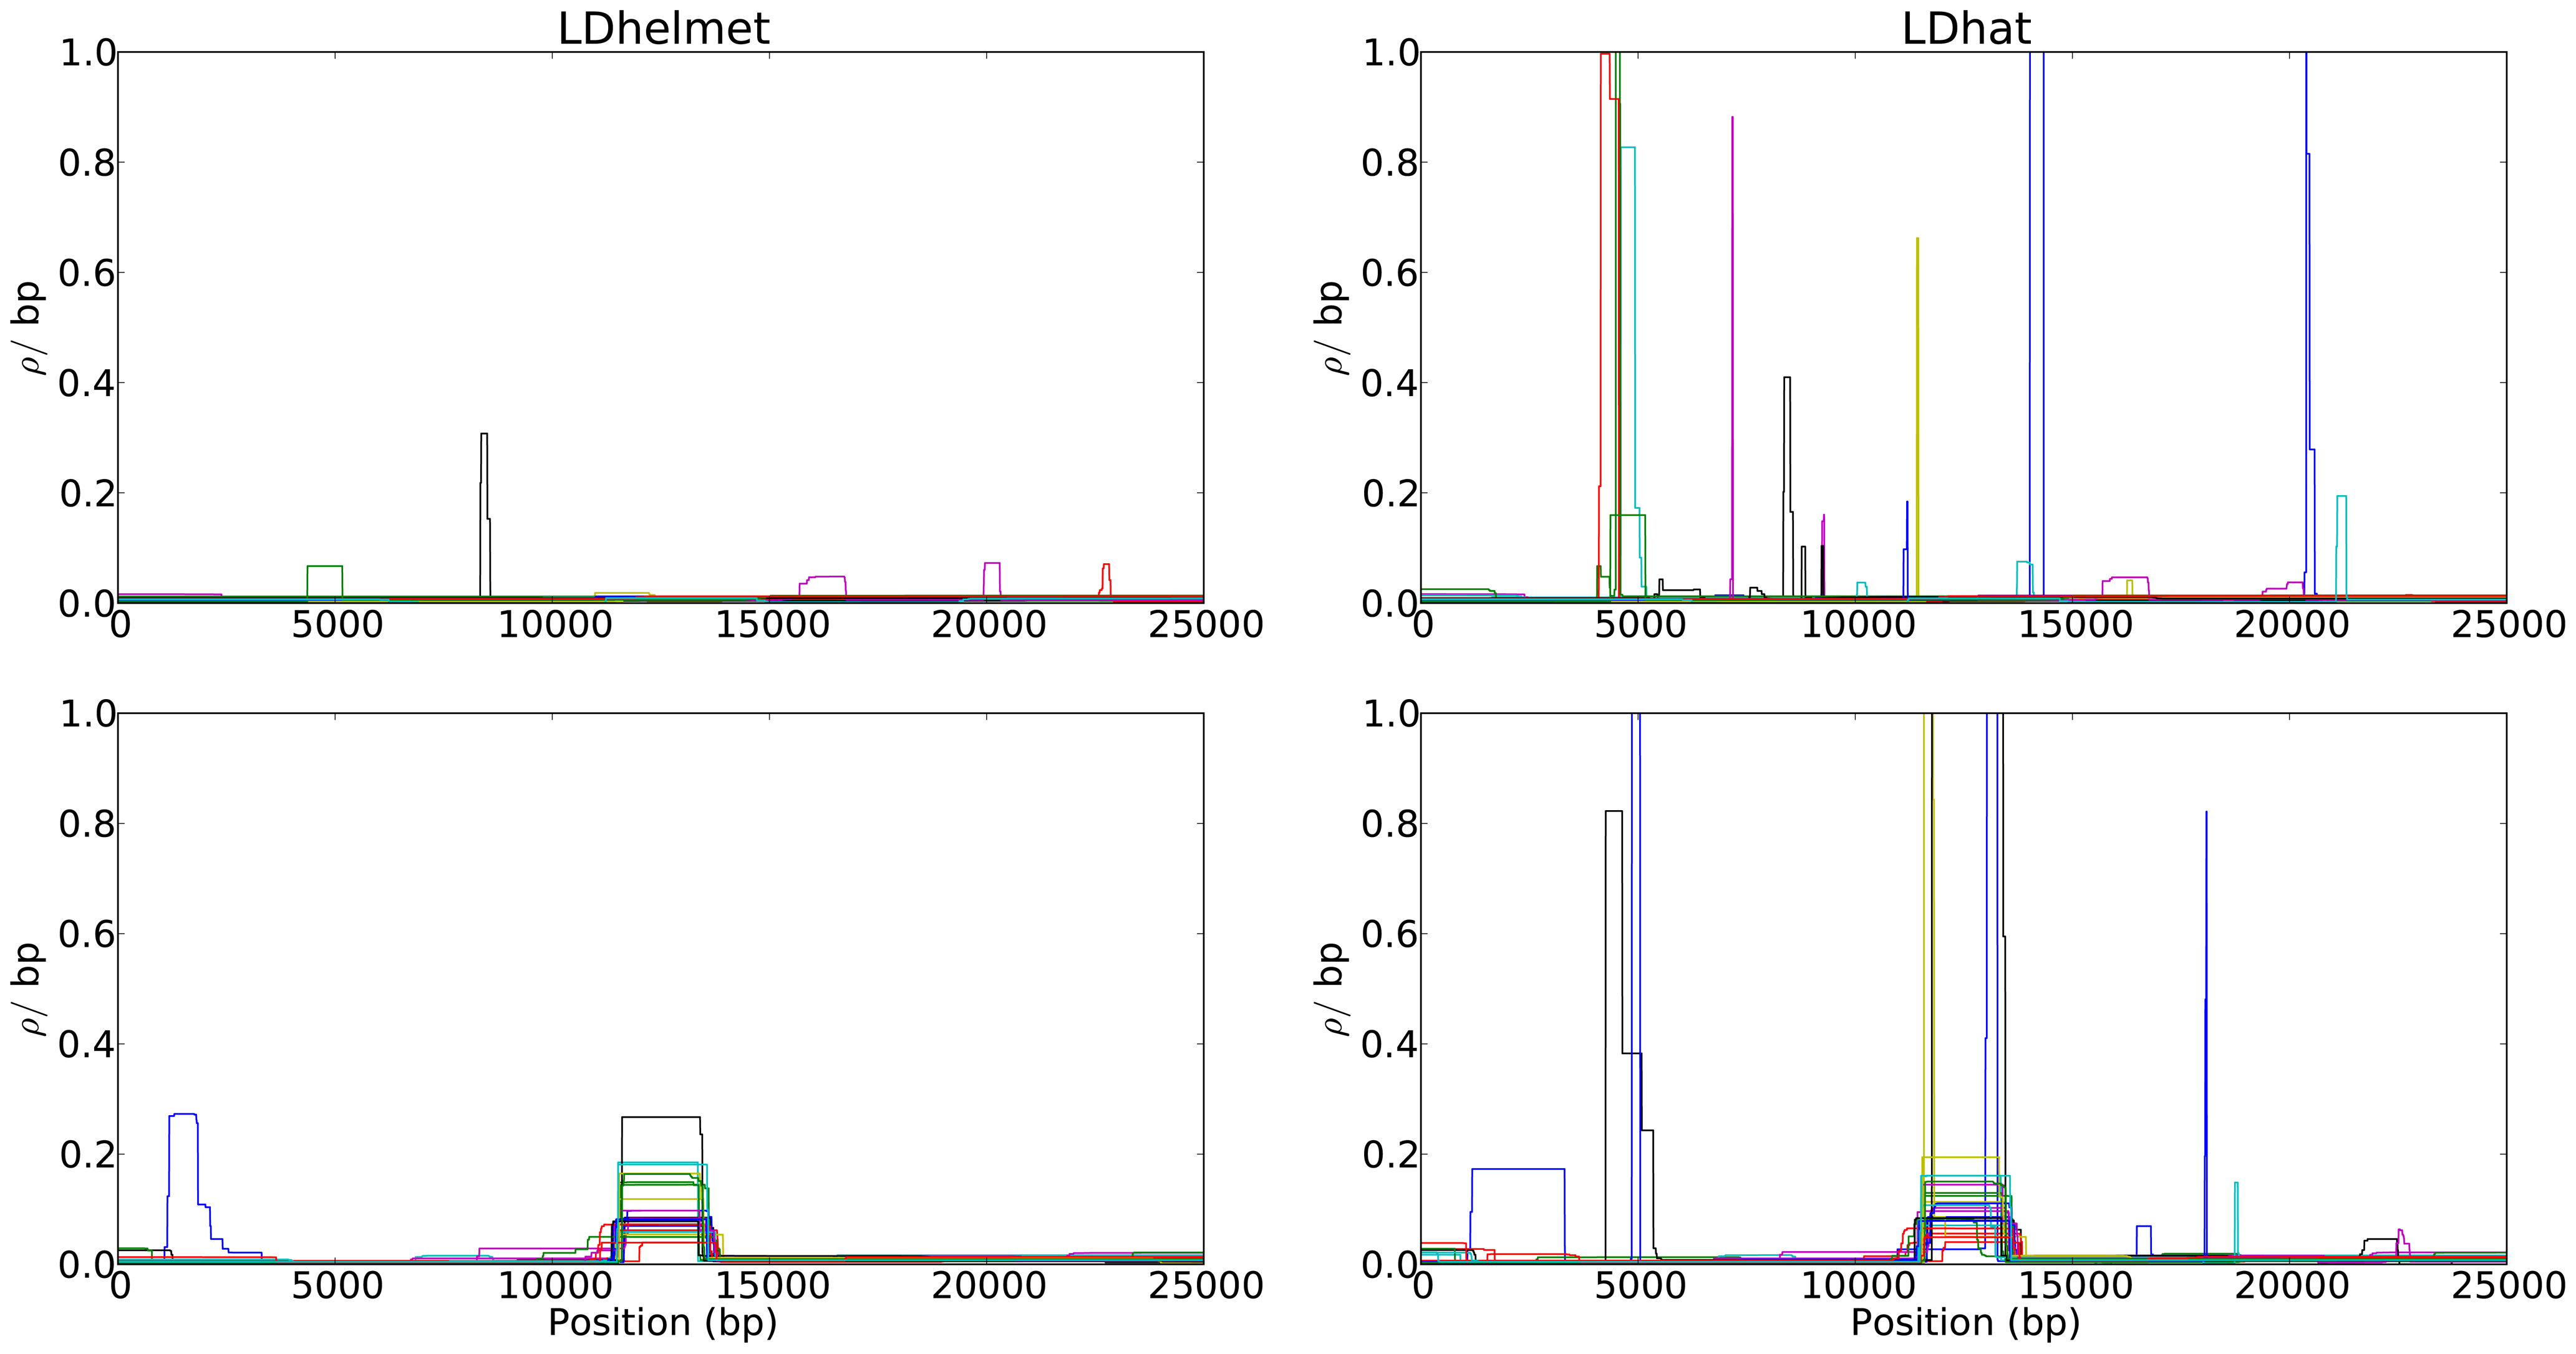 Comparison of the results of LDhelmet and LDhat for 25 datasets simulated under strong positive selection.